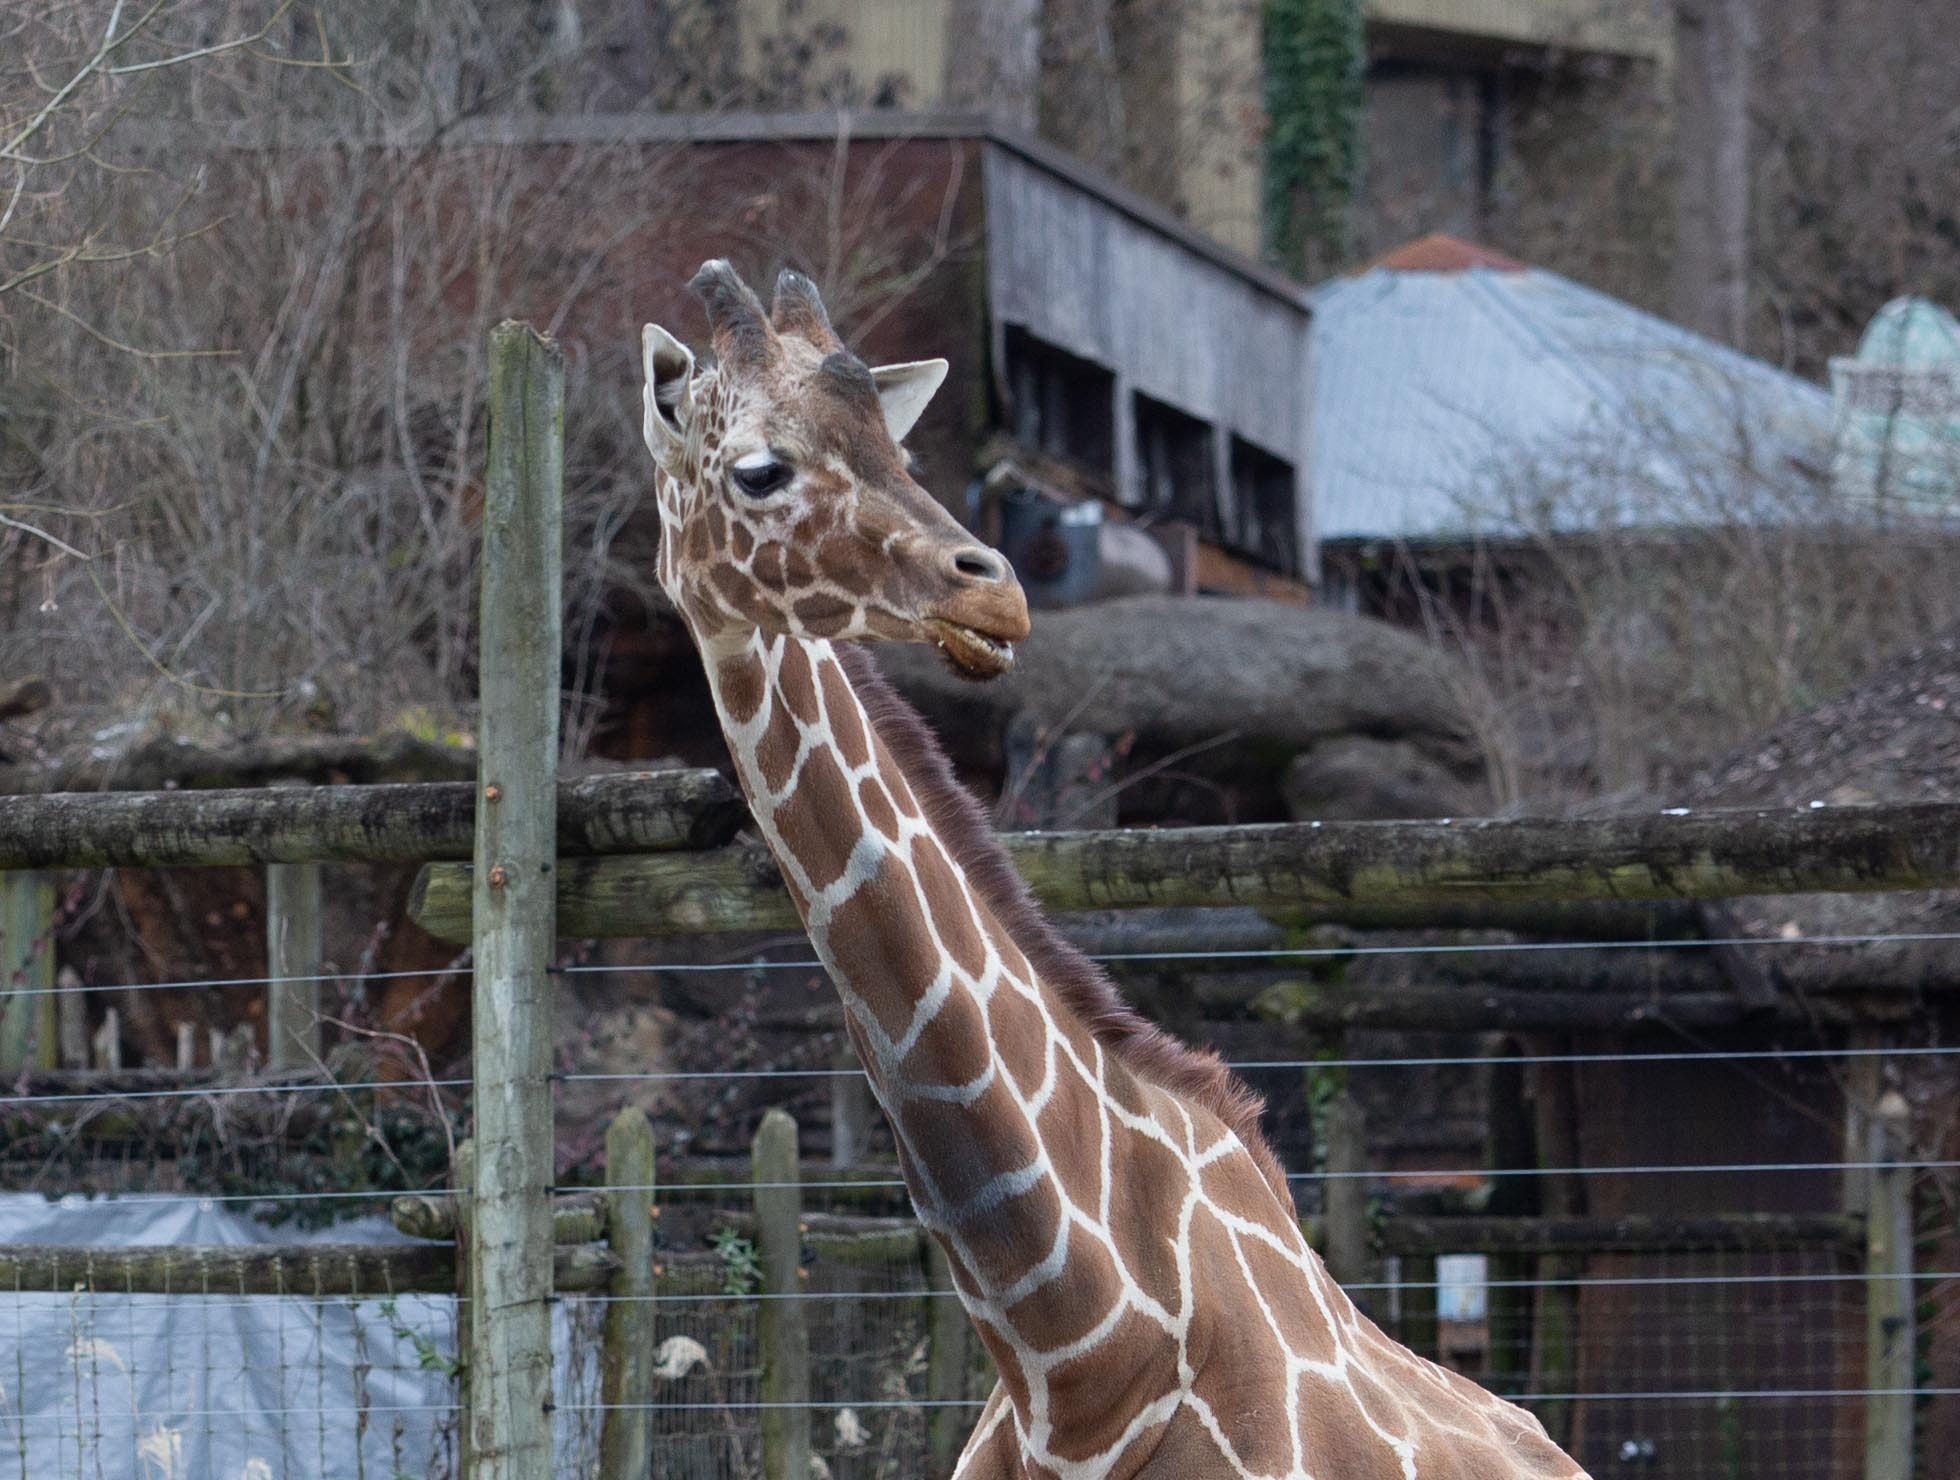 Zoo Knoxville's 31-year-old giraffe Patches. Now in declining health with advanced arthritis, Patches gave birth to eight offspring at the park.